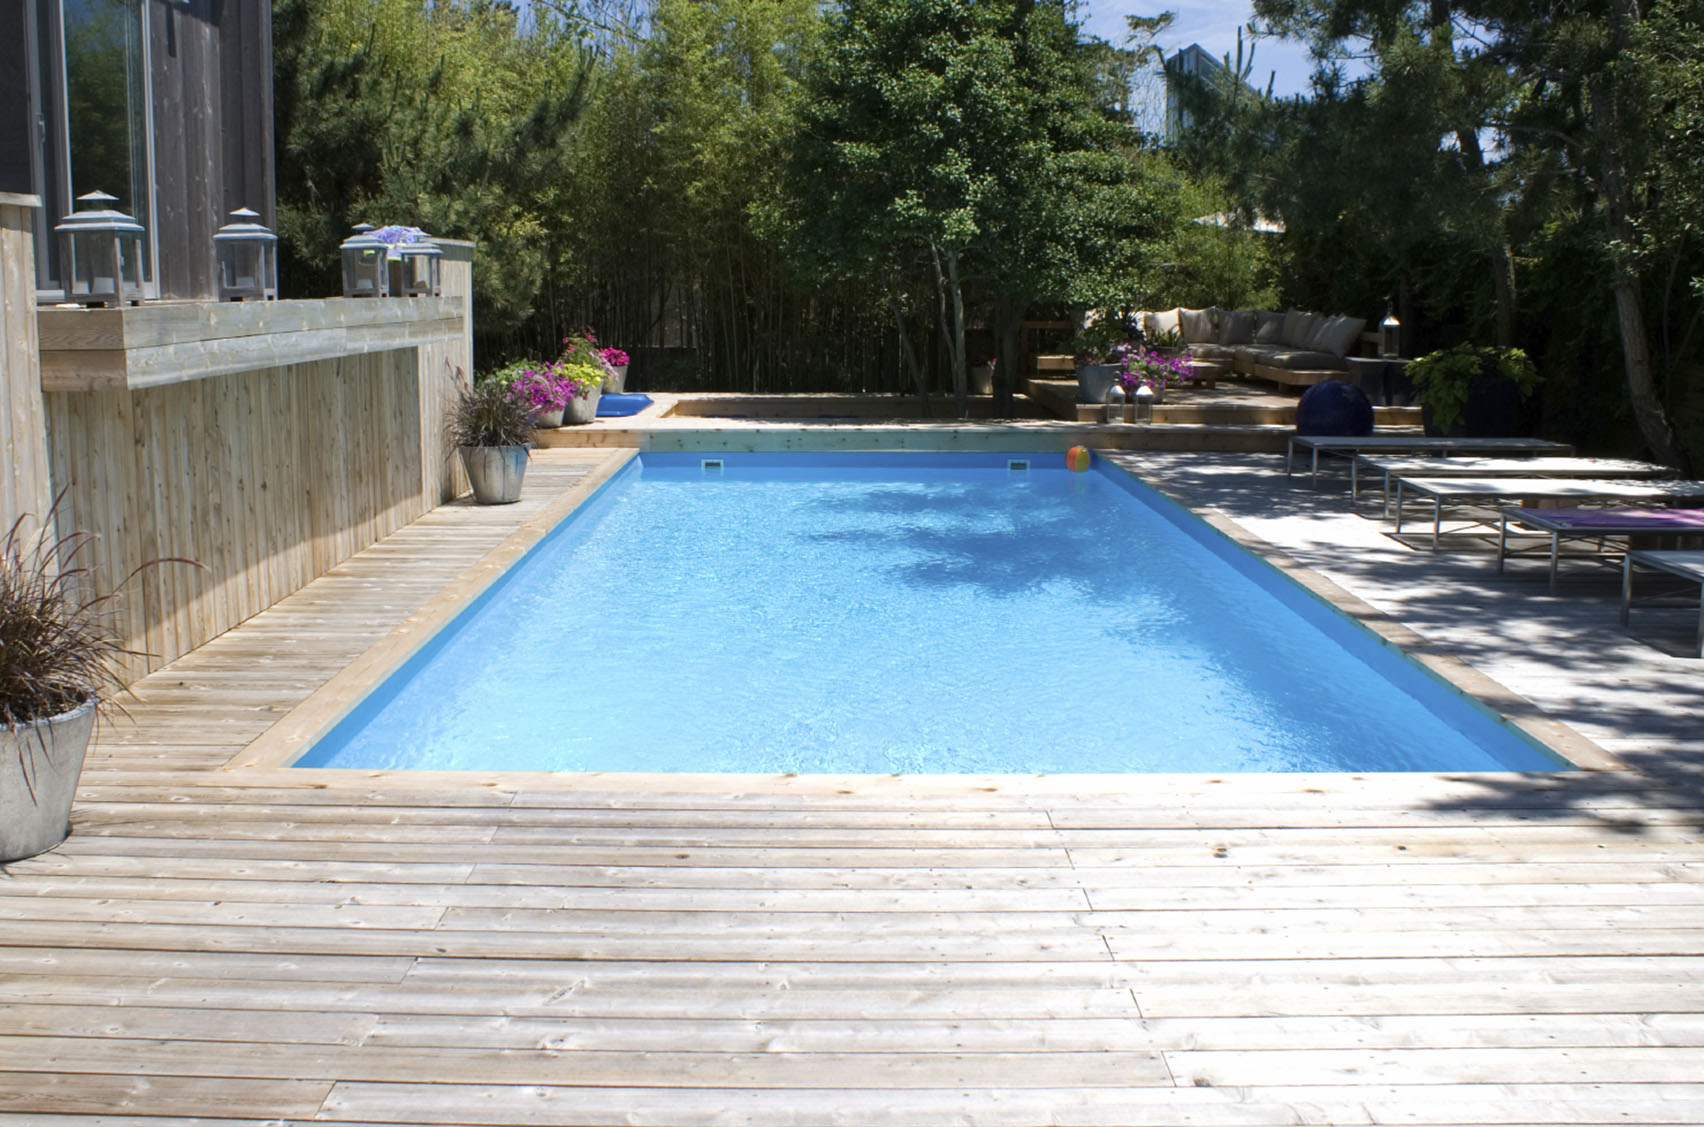 Pool deck wood example reston virginia pool design for Pool design examples